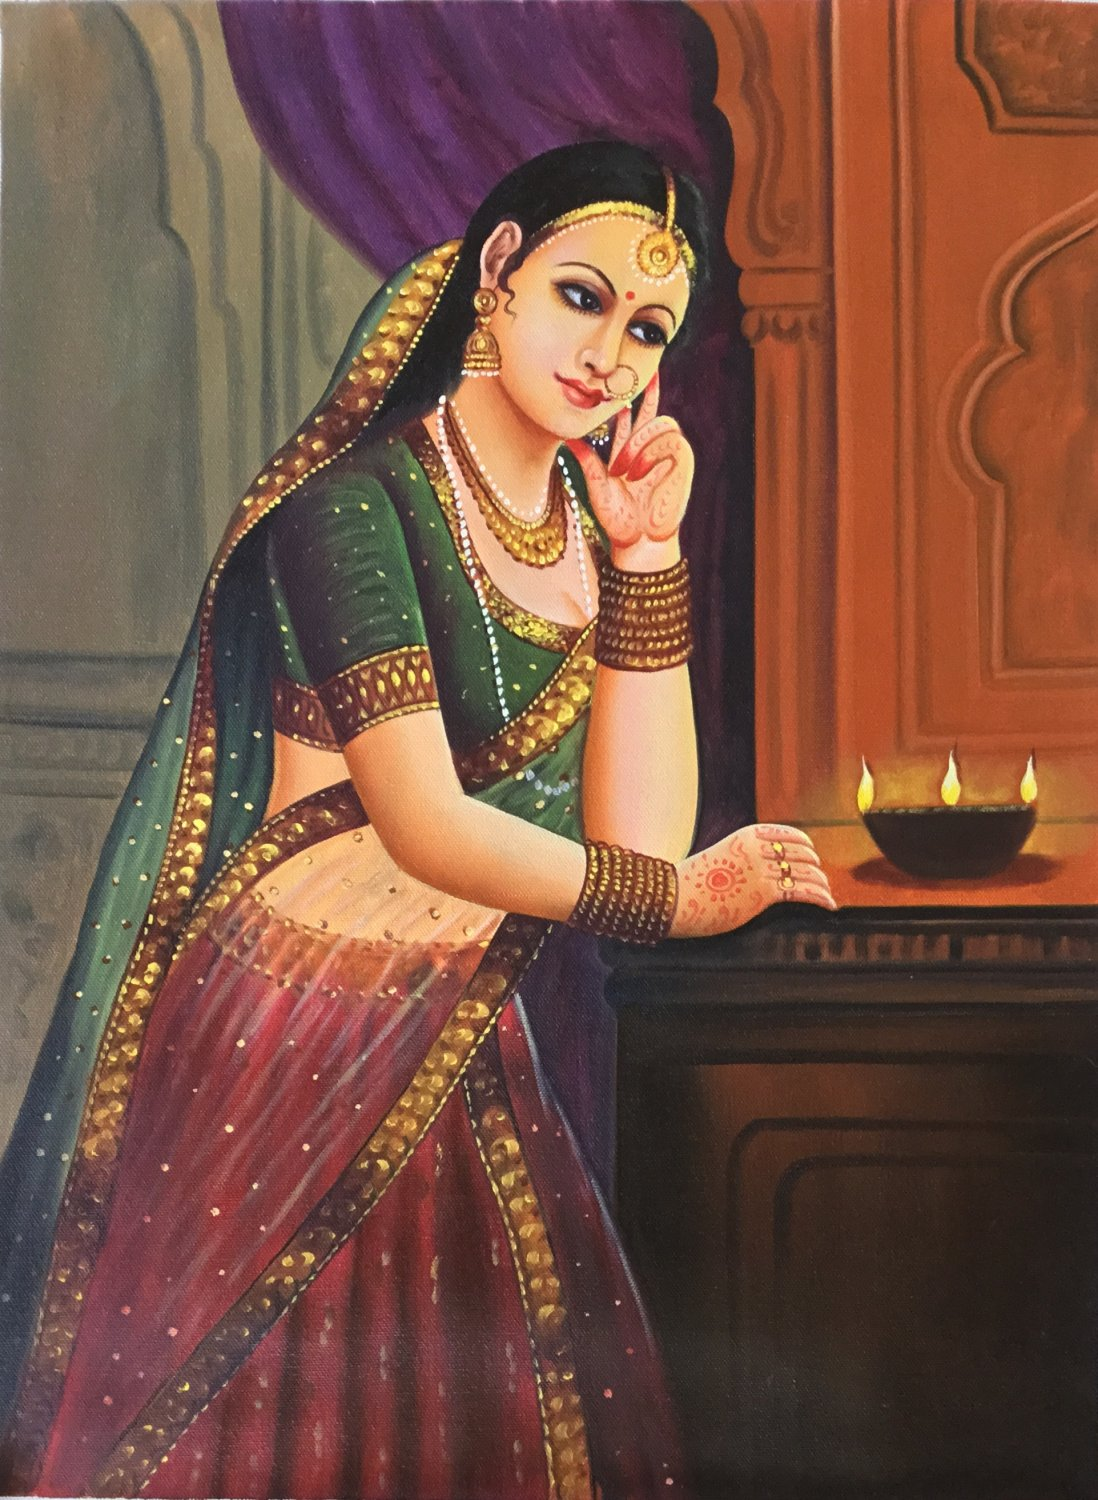 Rajasthan Indian Princess Art Handmade Damsel Wall Decor Oil on Canvas Painting